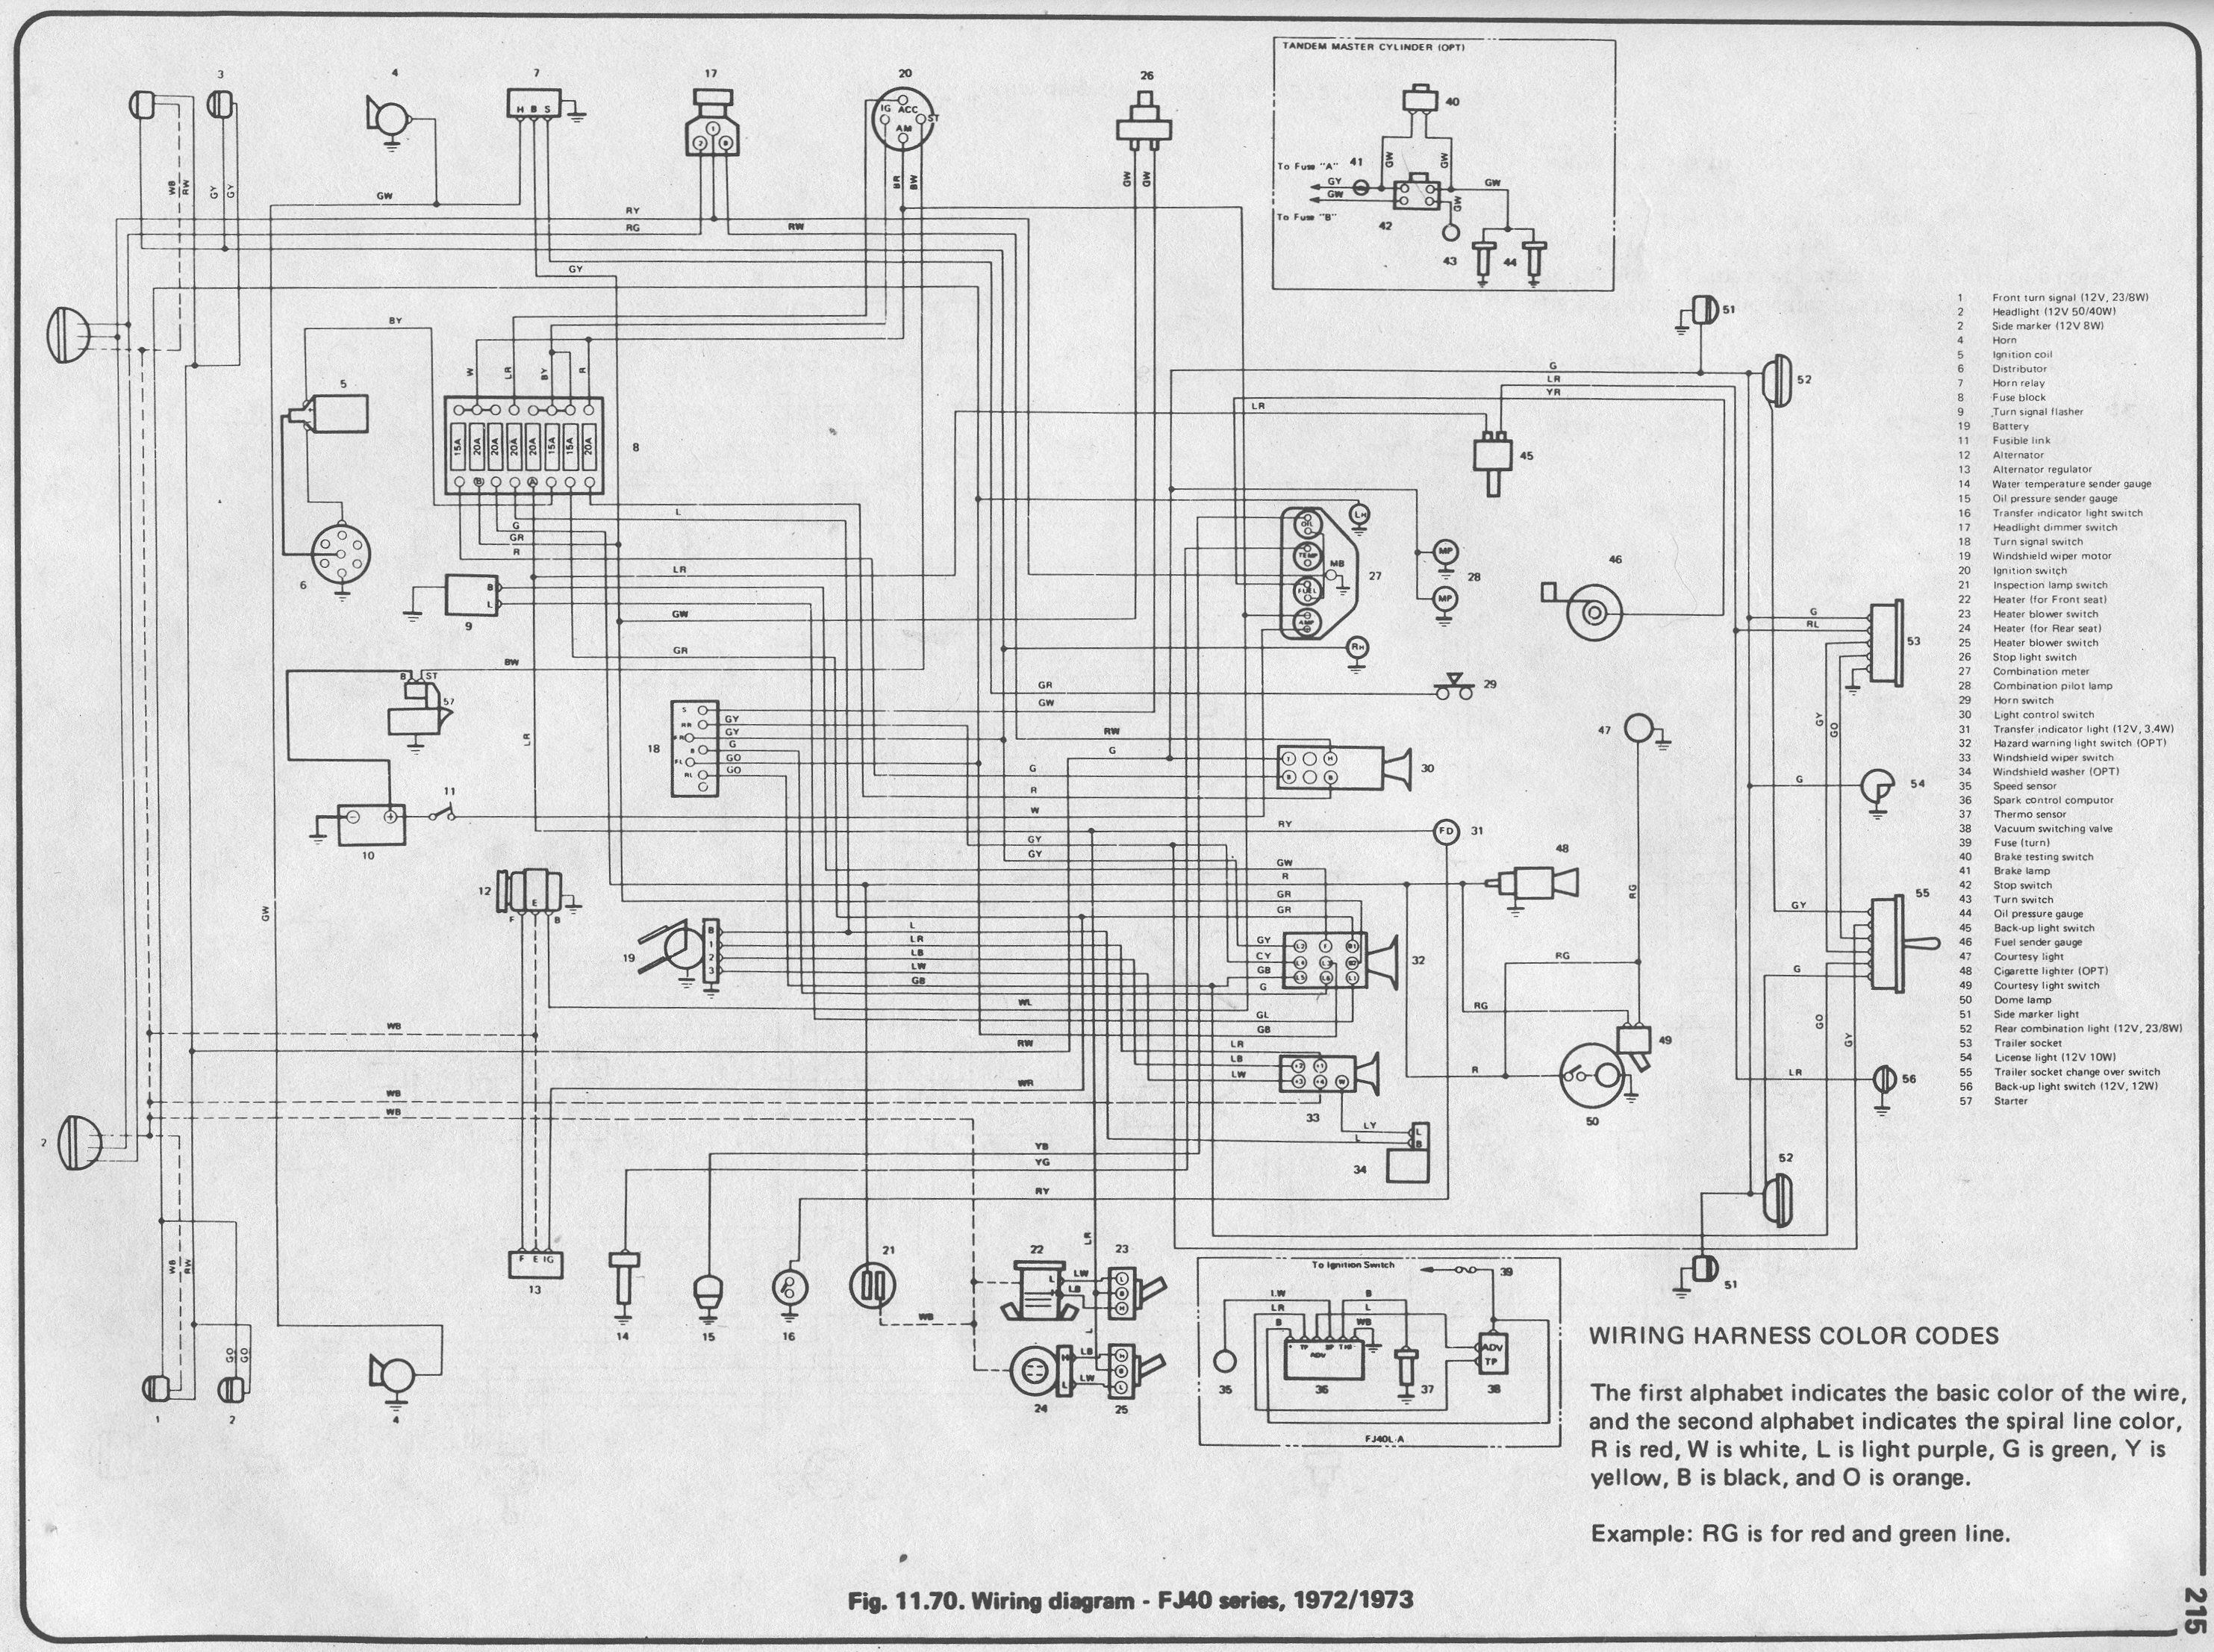 wiring diagram 1972 chevelle malibu free download with Toyota Fj40 Wiring Harness on 1970 Monte Carlo Ss Engine furthermore 1967 Buick Skylark Wiring Diagram moreover 1970 Monte Carlo Steering Column Wiring Diagram Wiring Diagrams besides 82 El Camino Wiring Harness besides 69 Pontiac Lemans Wiring Diagram.